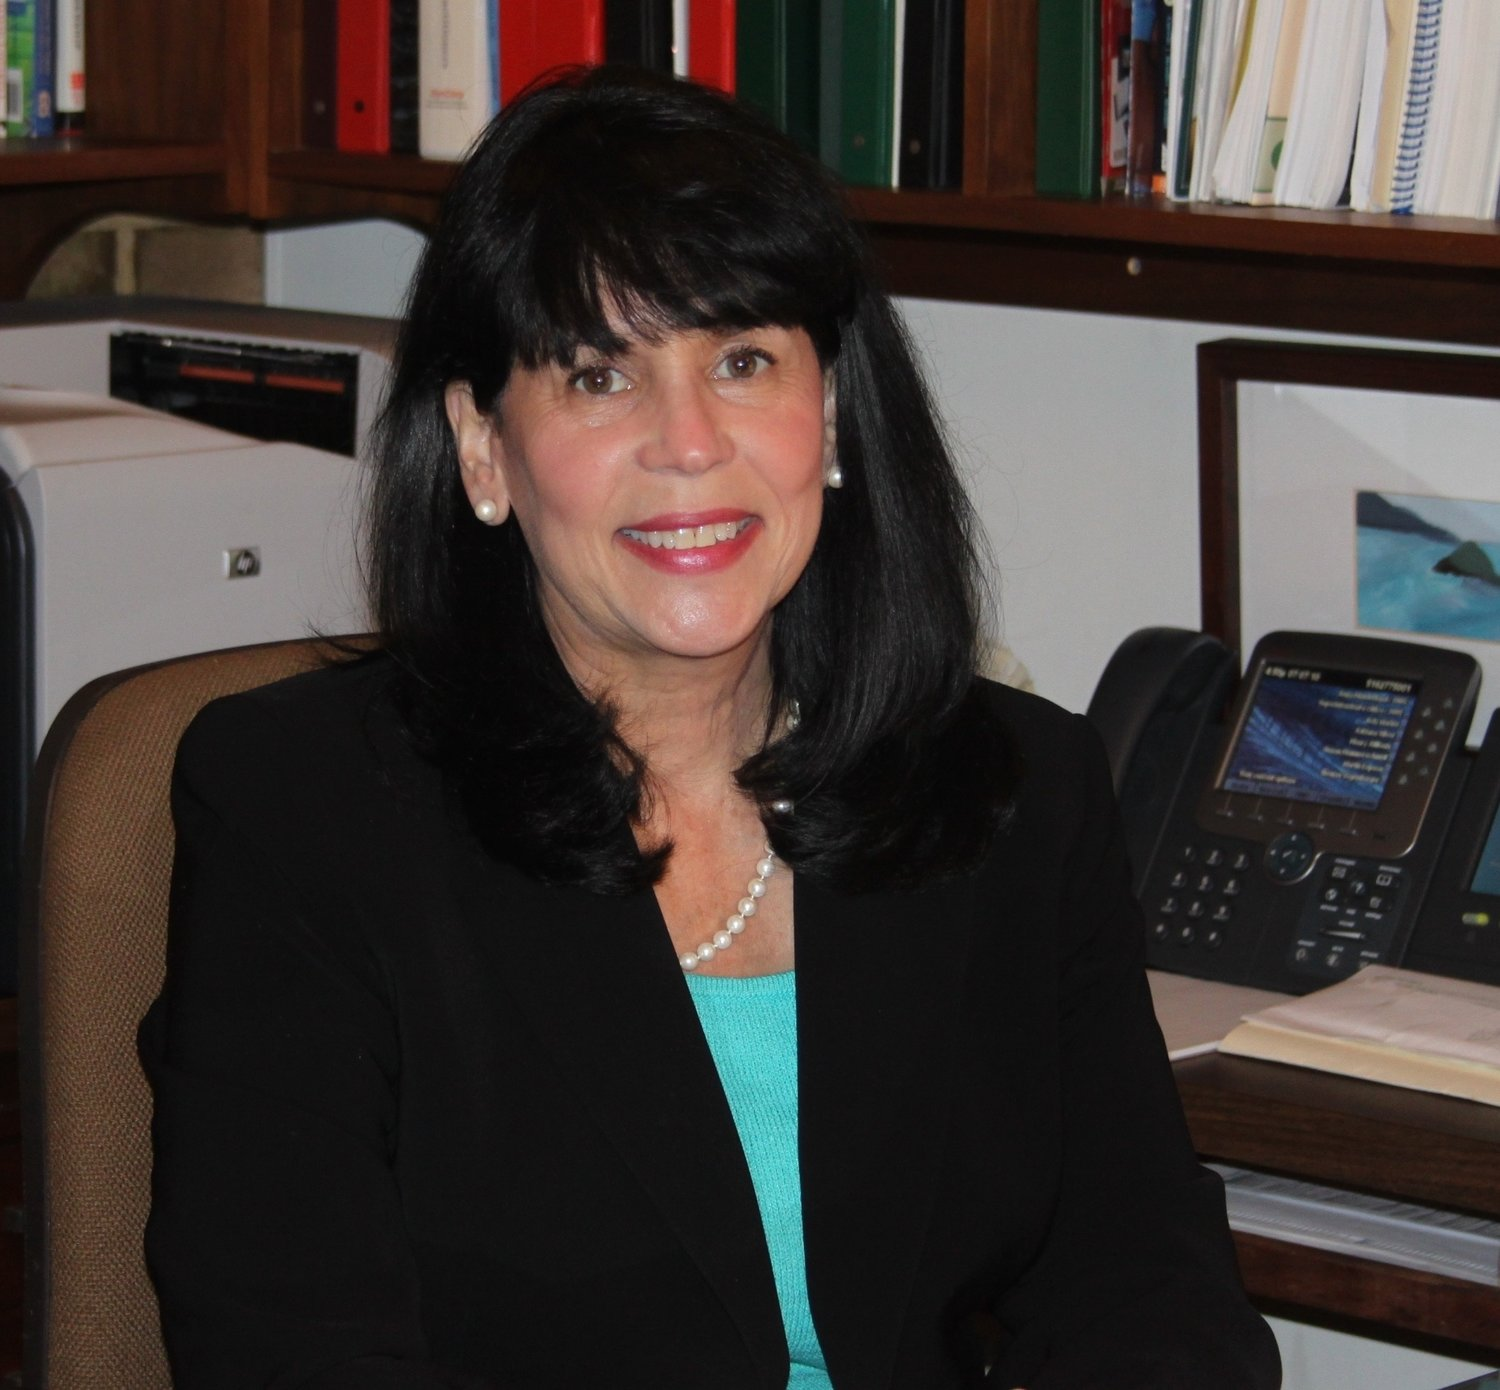 LVSD superintendent Anna Hunderfund has been placed on administrative leave.